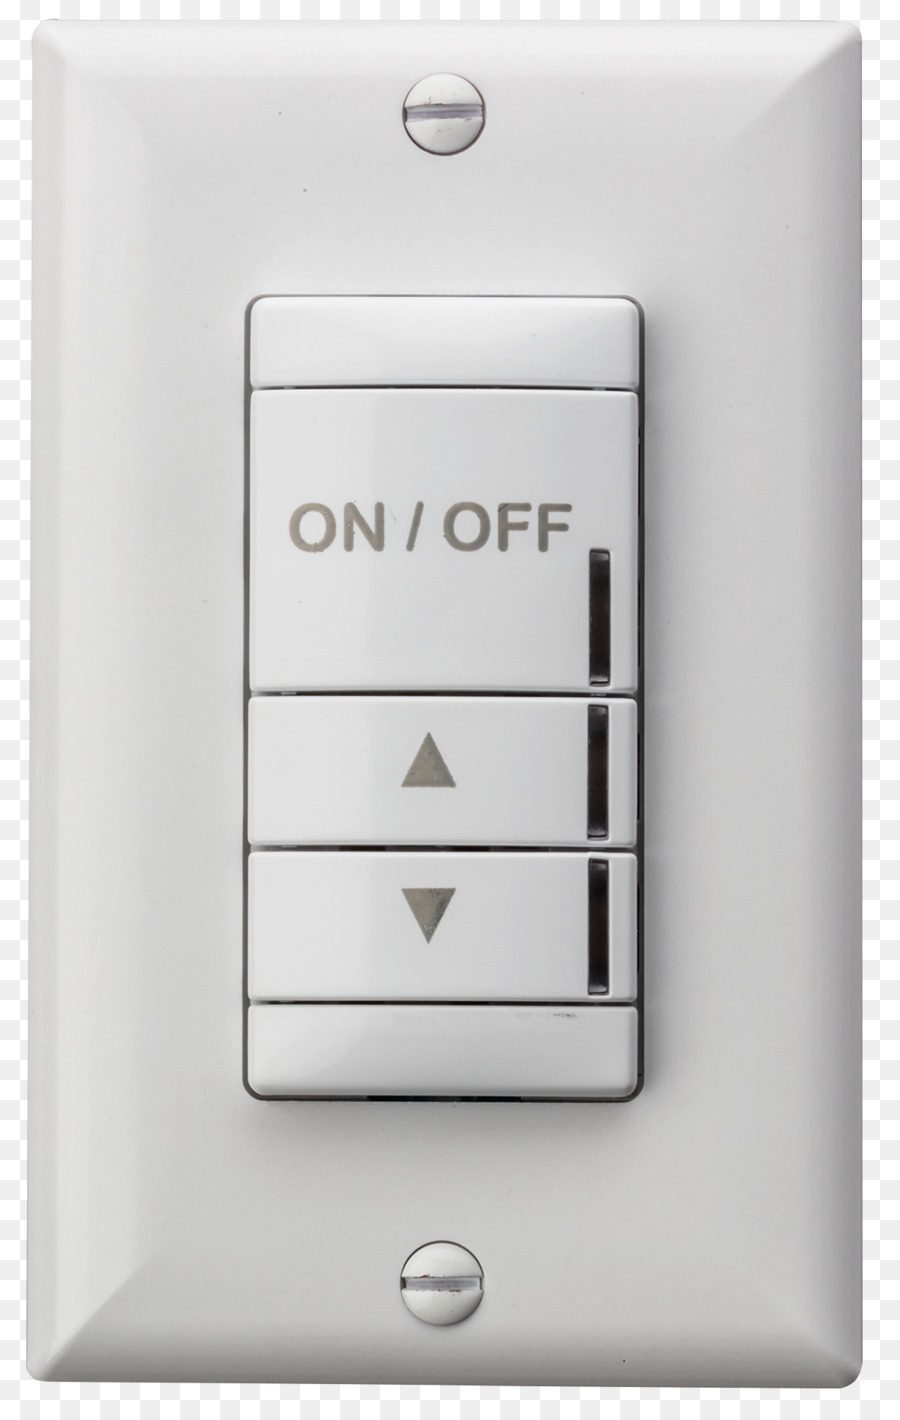 medium resolution of latching relay light pushbutton light switch switch png